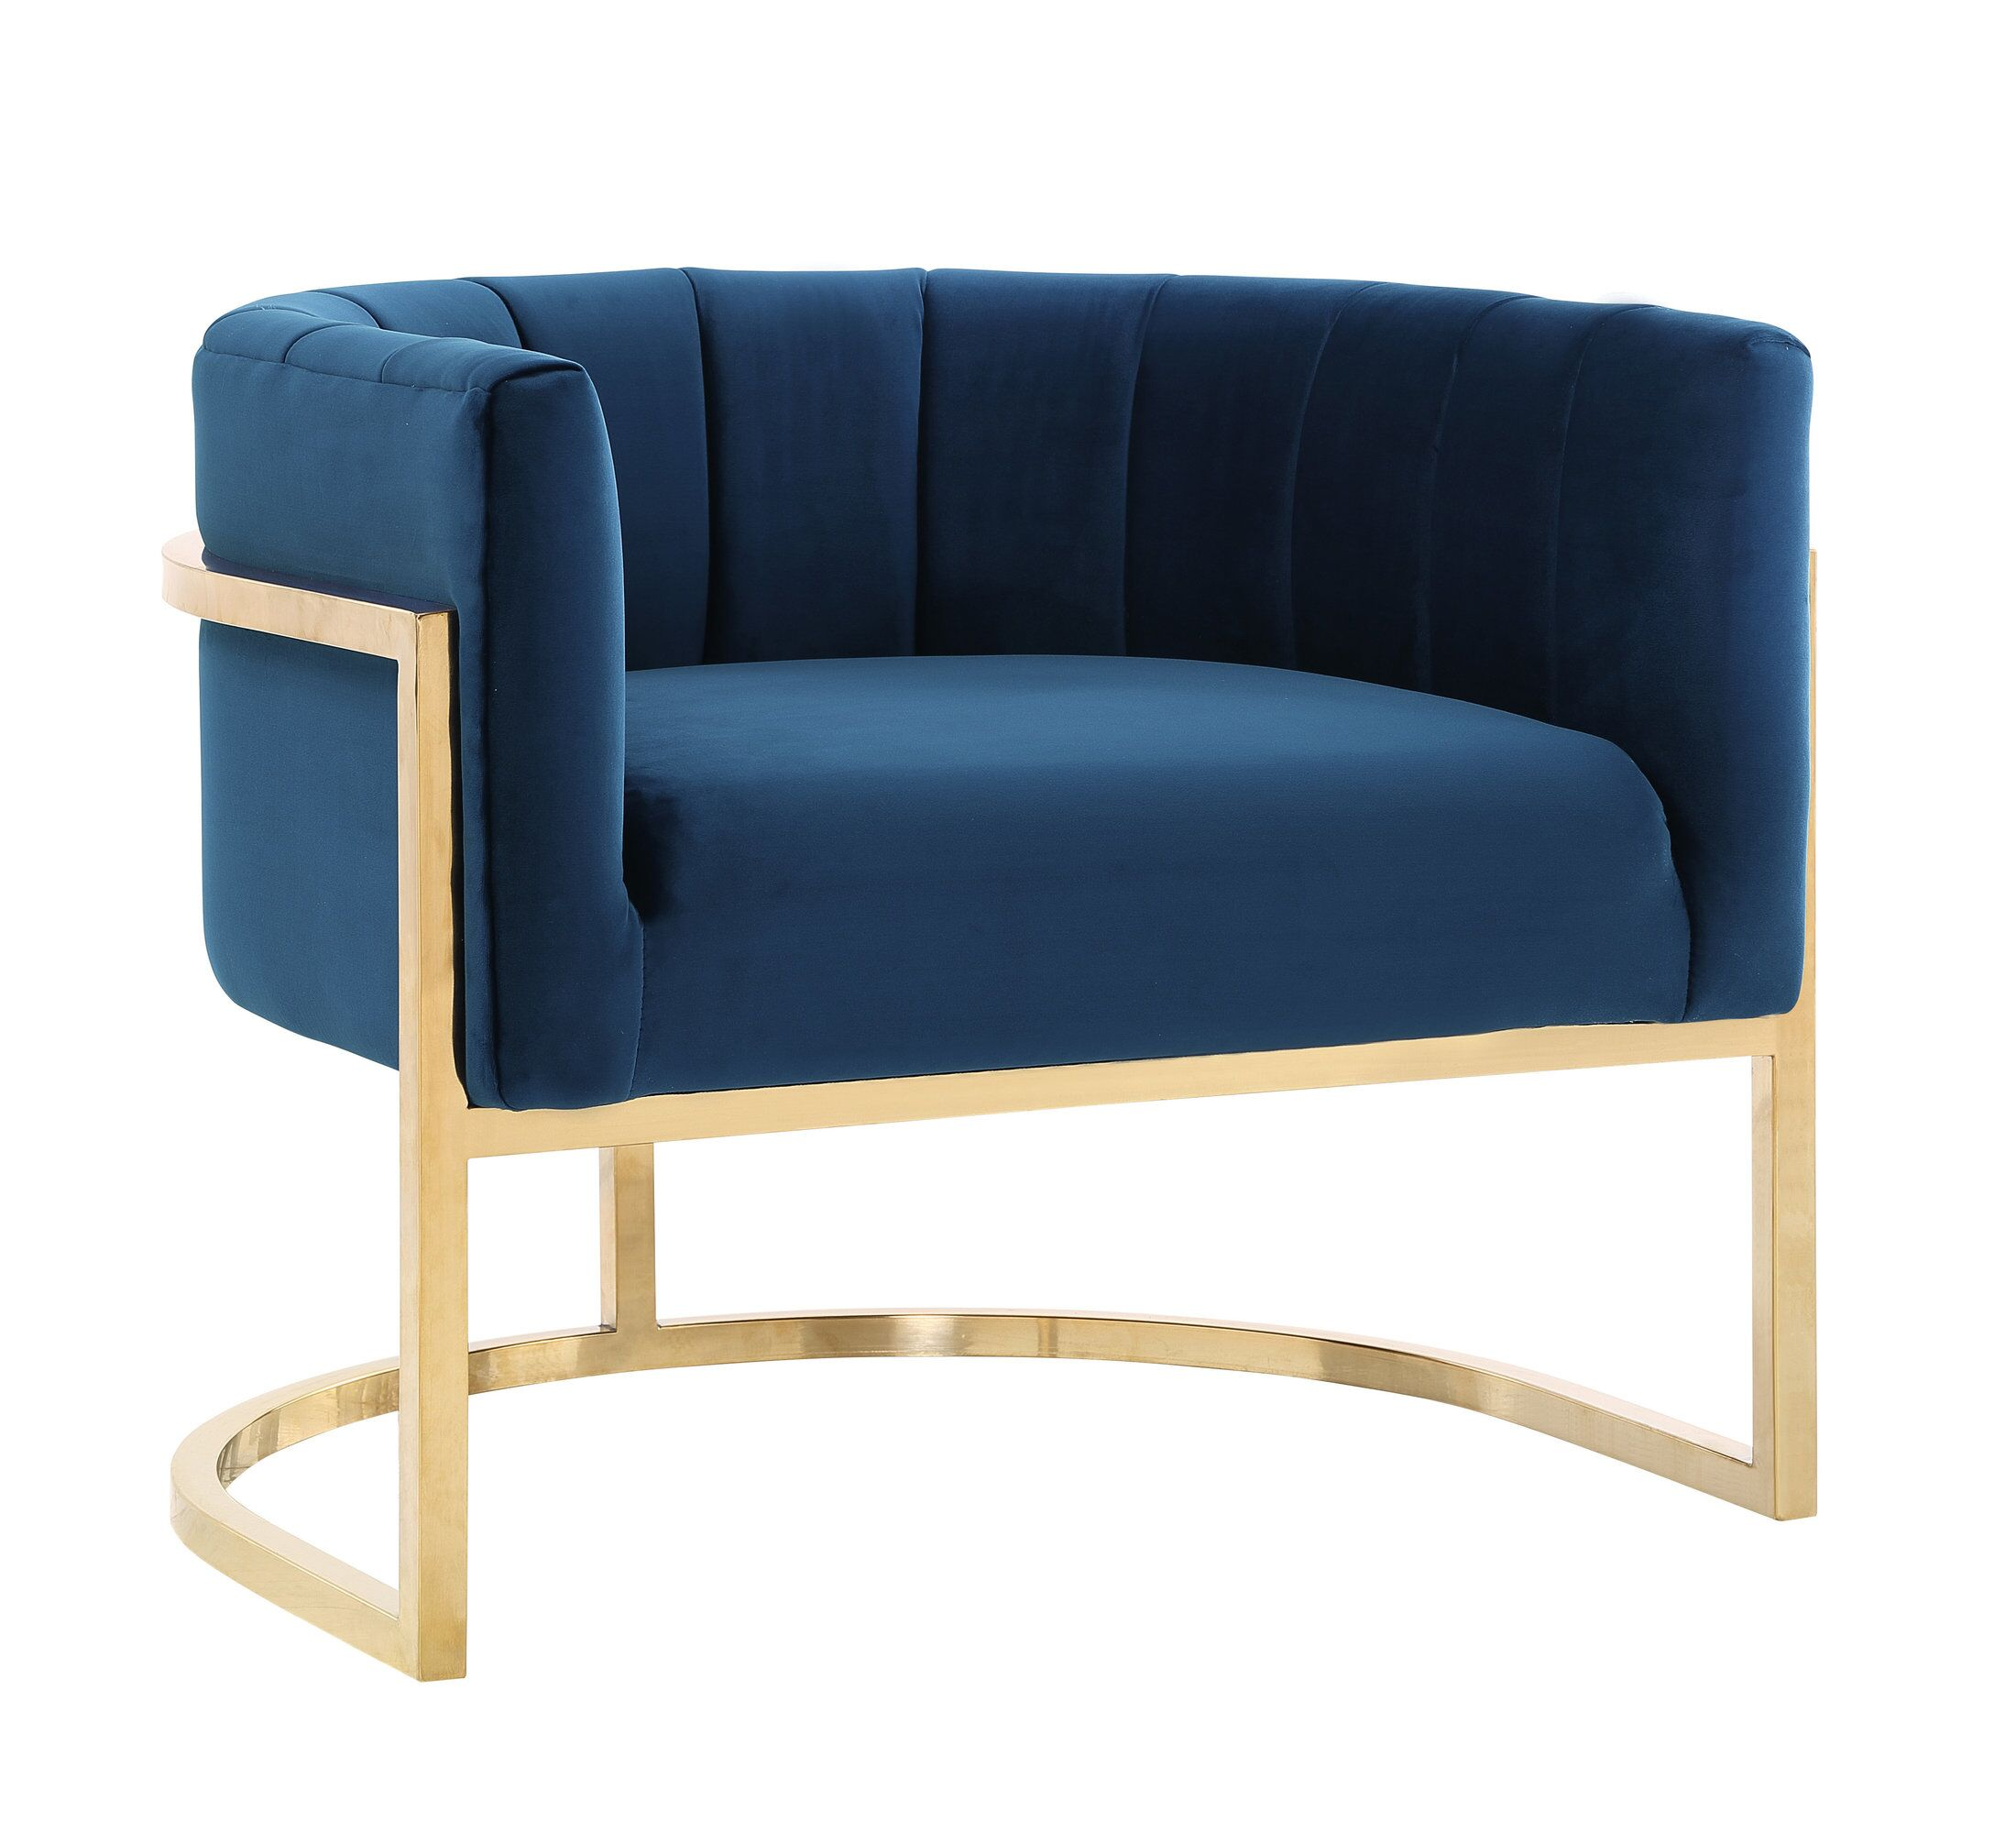 Picture of: Magnolia Navy Blue Chair W Gold Base By Tov Furniture